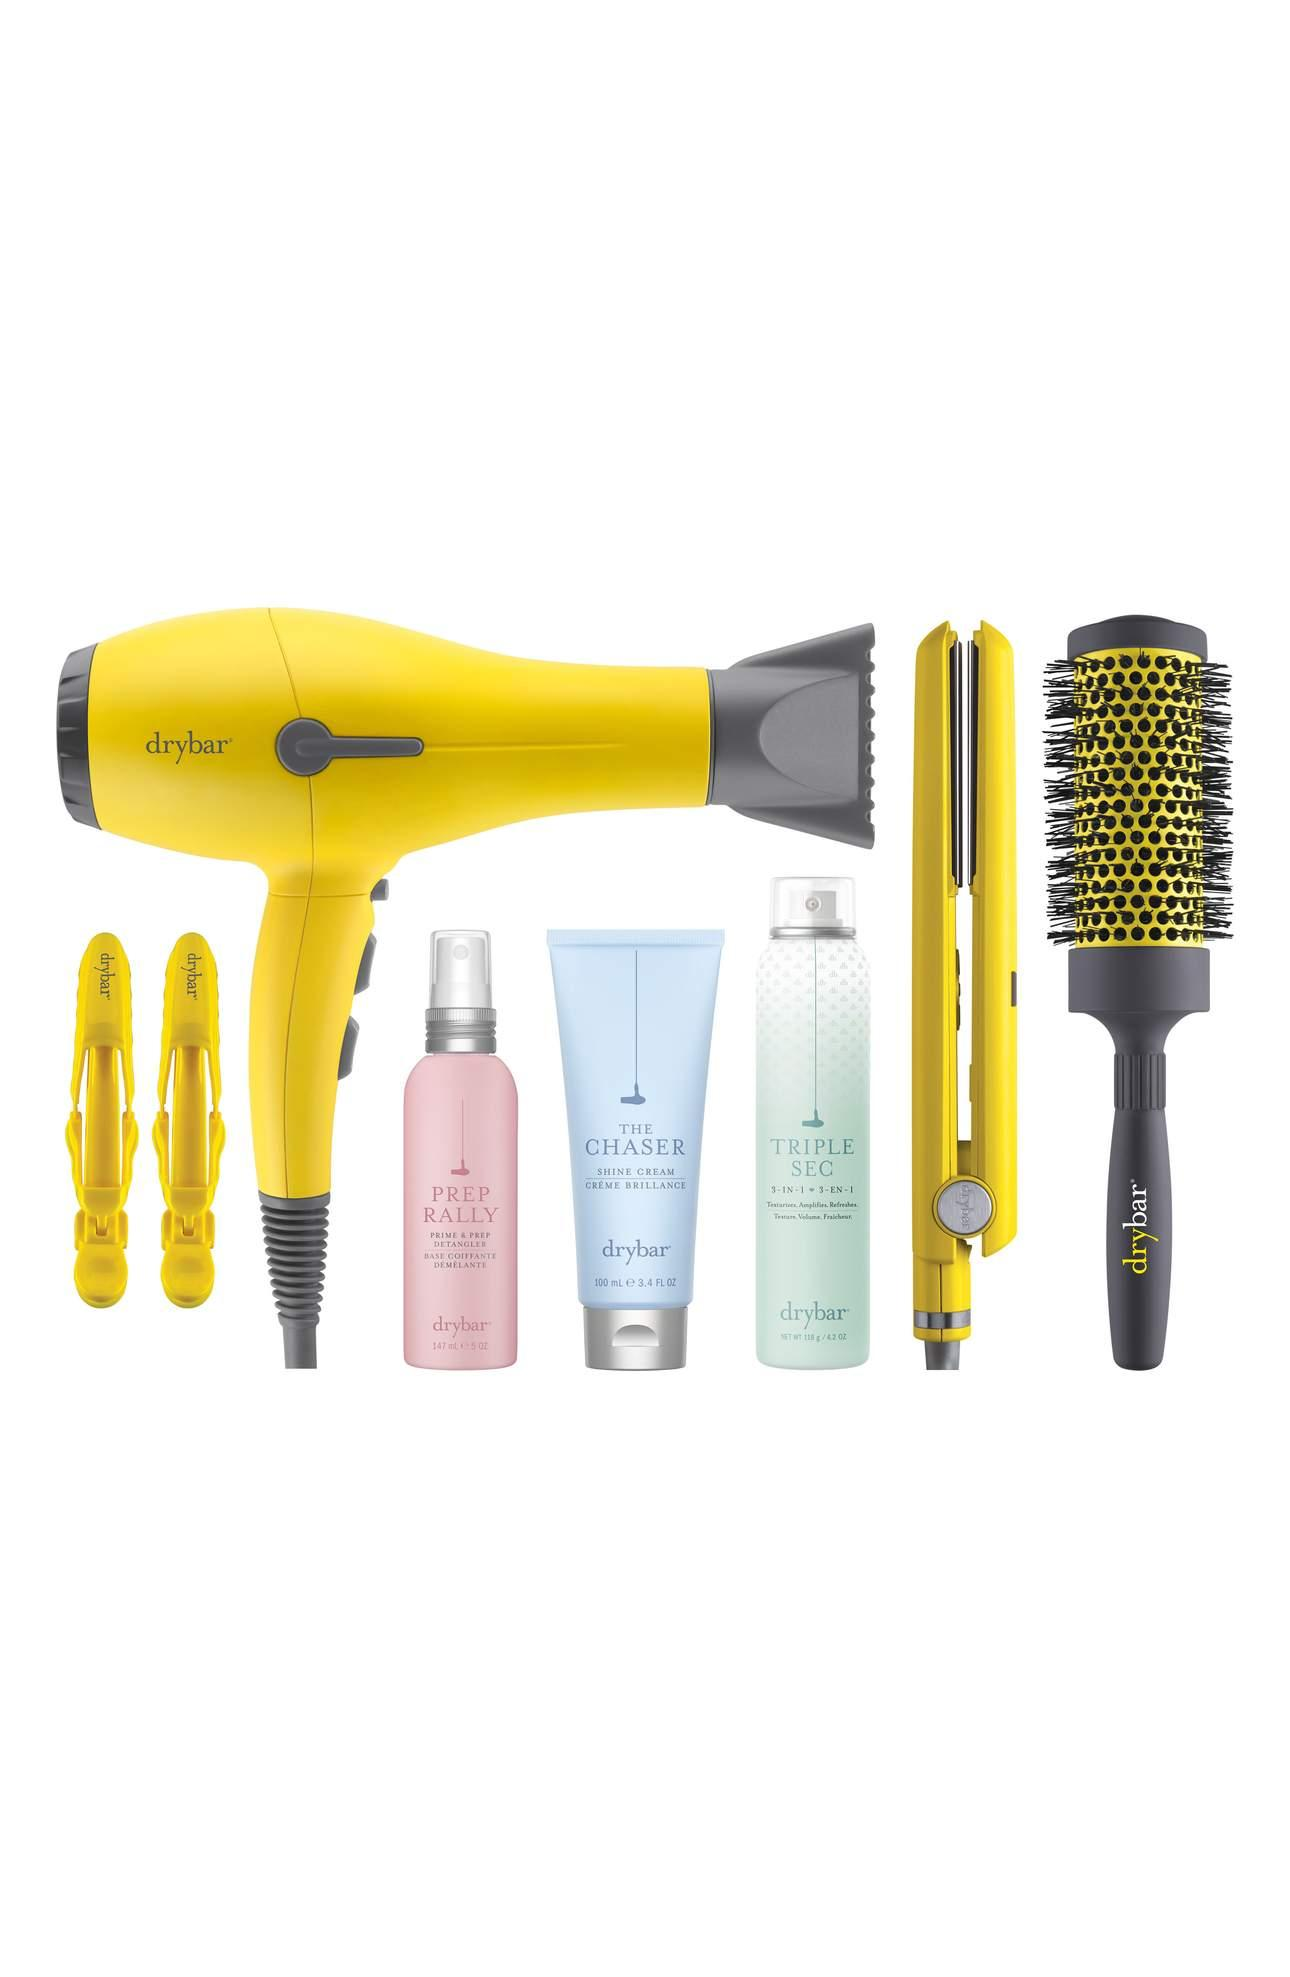 <p>DRYBAR Buttercup Big Bundle Collection - $299. This is a bit of a splurge, but so worth it. DRYBAR is a complete game-changer when it comes to your hair game. Does your lady have a full head of hair? If the answer is yes, BUY THIS. Also note, it's a limited edition set. Cost: $299.00 ($471 Value). (Image: Nordstrom){&amp;nbsp;}<br></p><p></p>